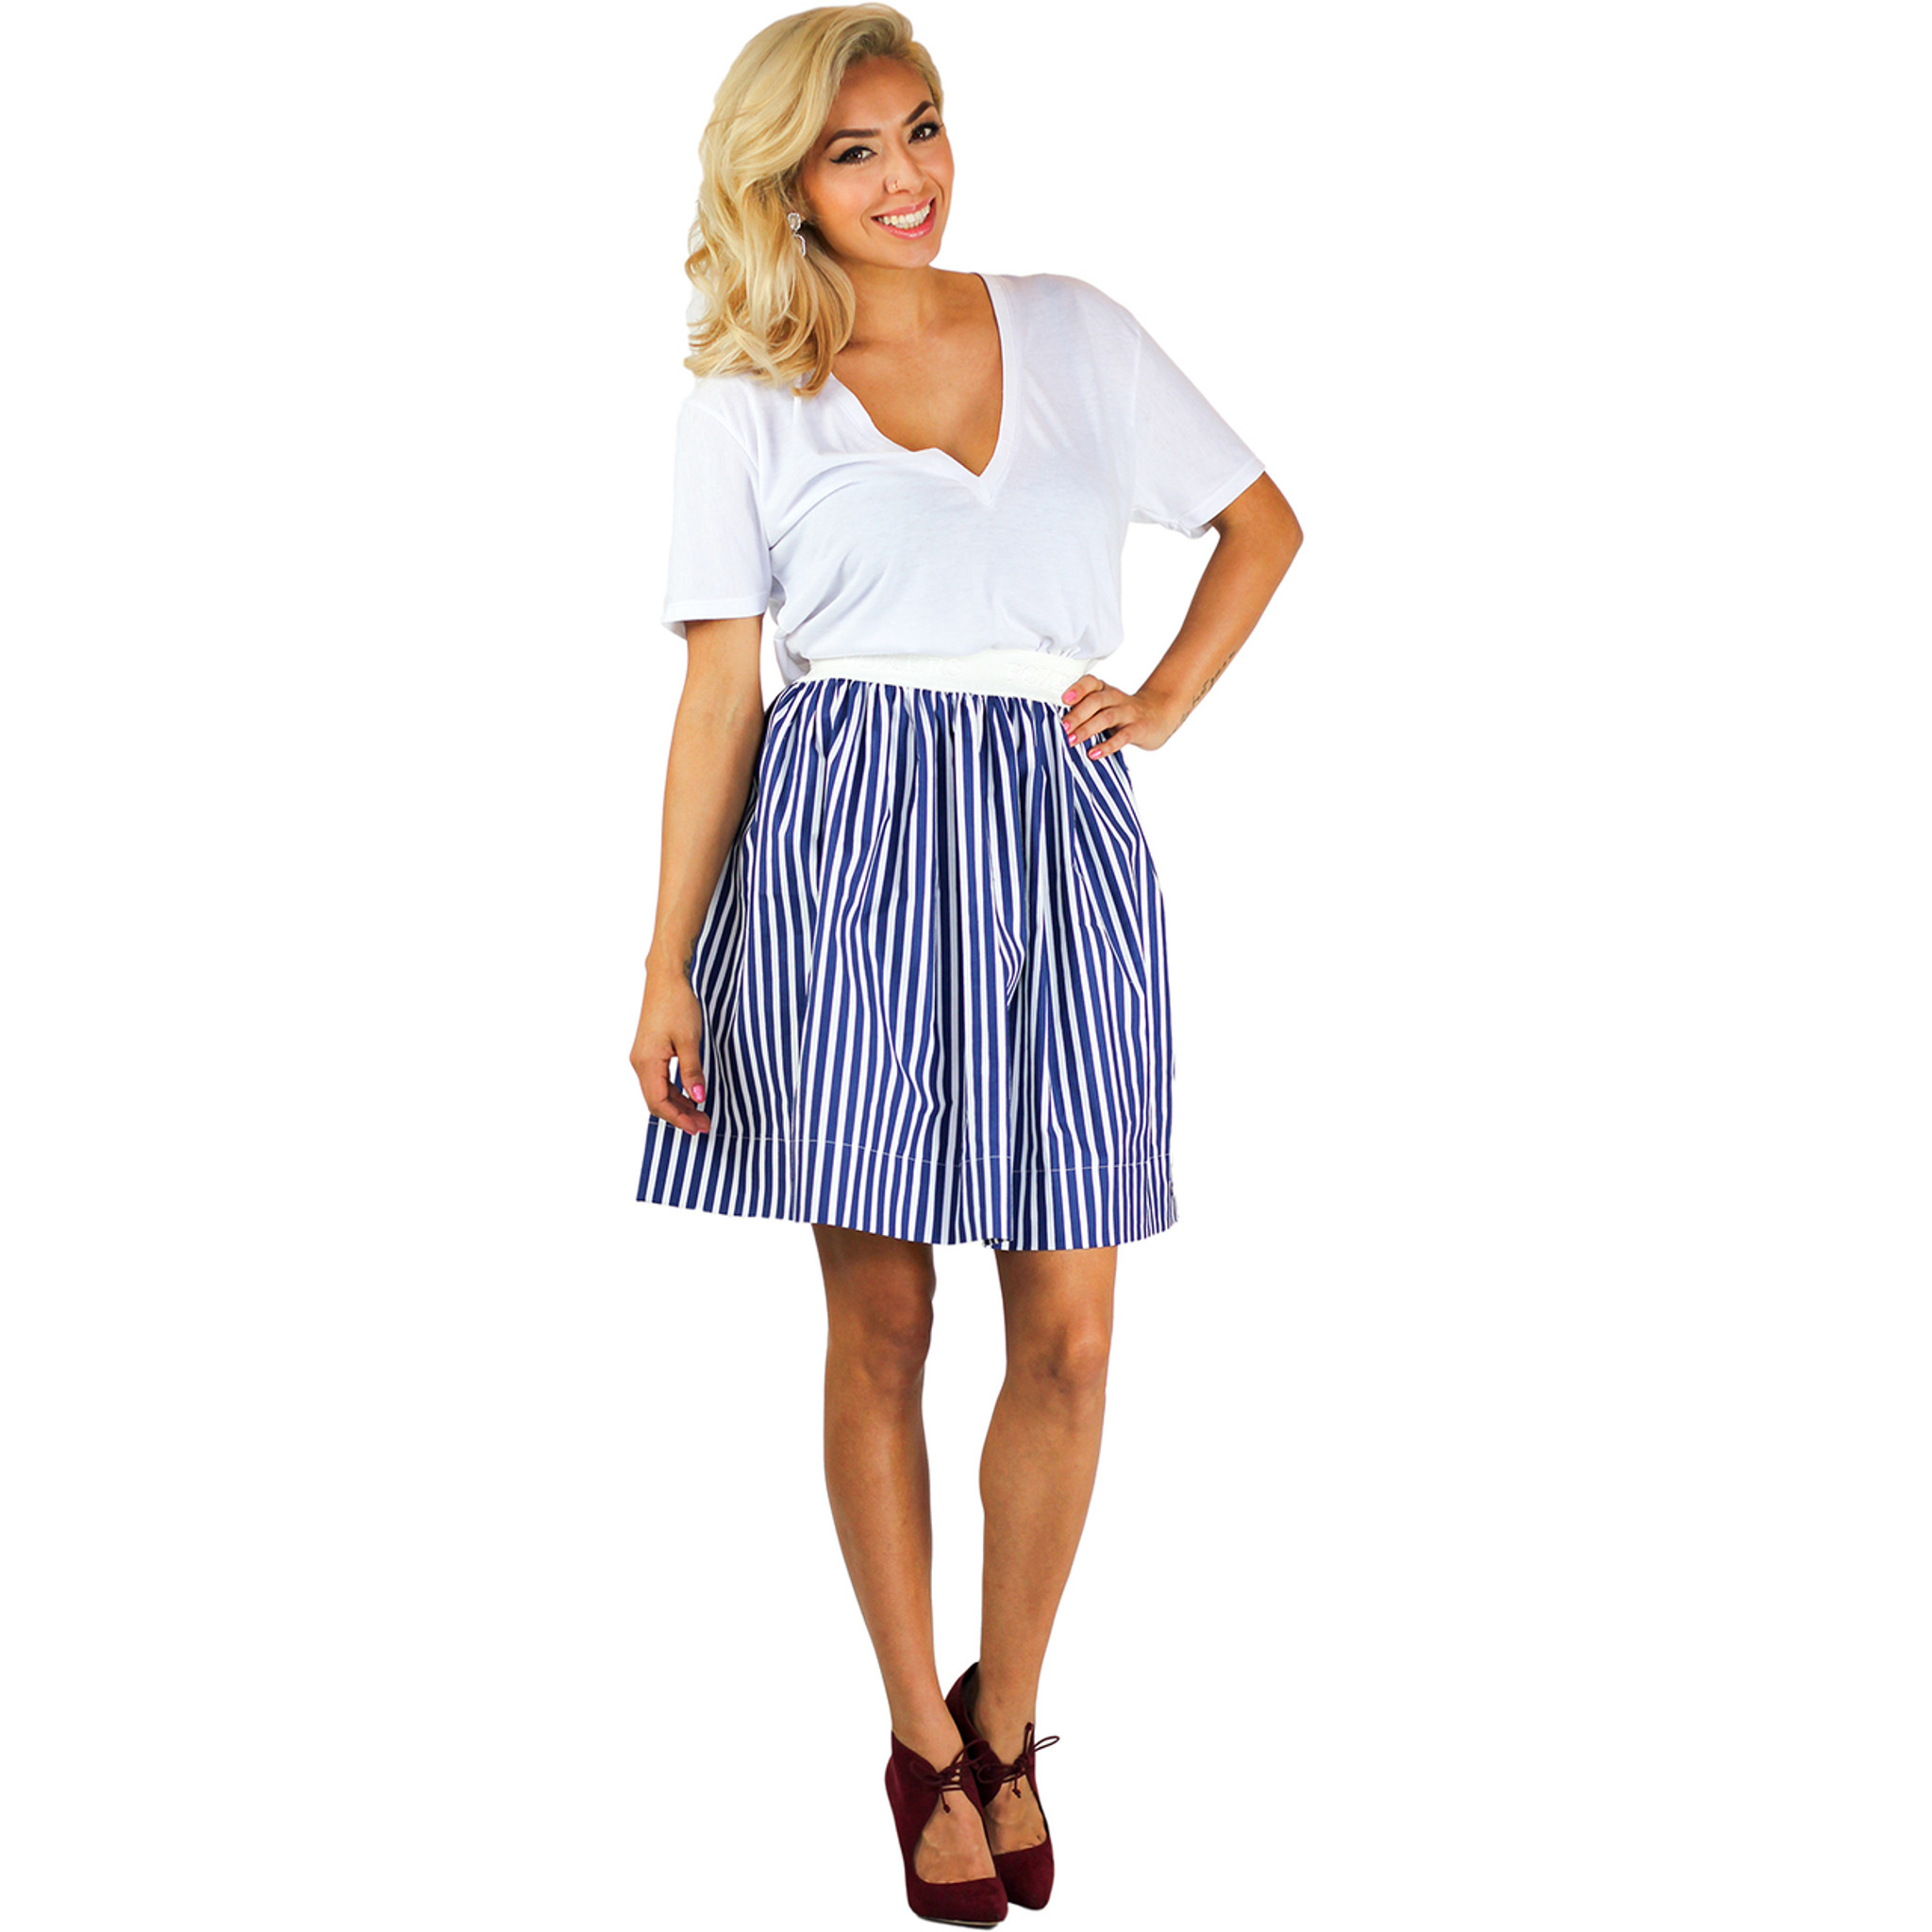 d1da33bc9f Navy Blue Striped Skirt With Pockets Foxers Navy & White Striped Skirt t  match our Lace Boxers ...